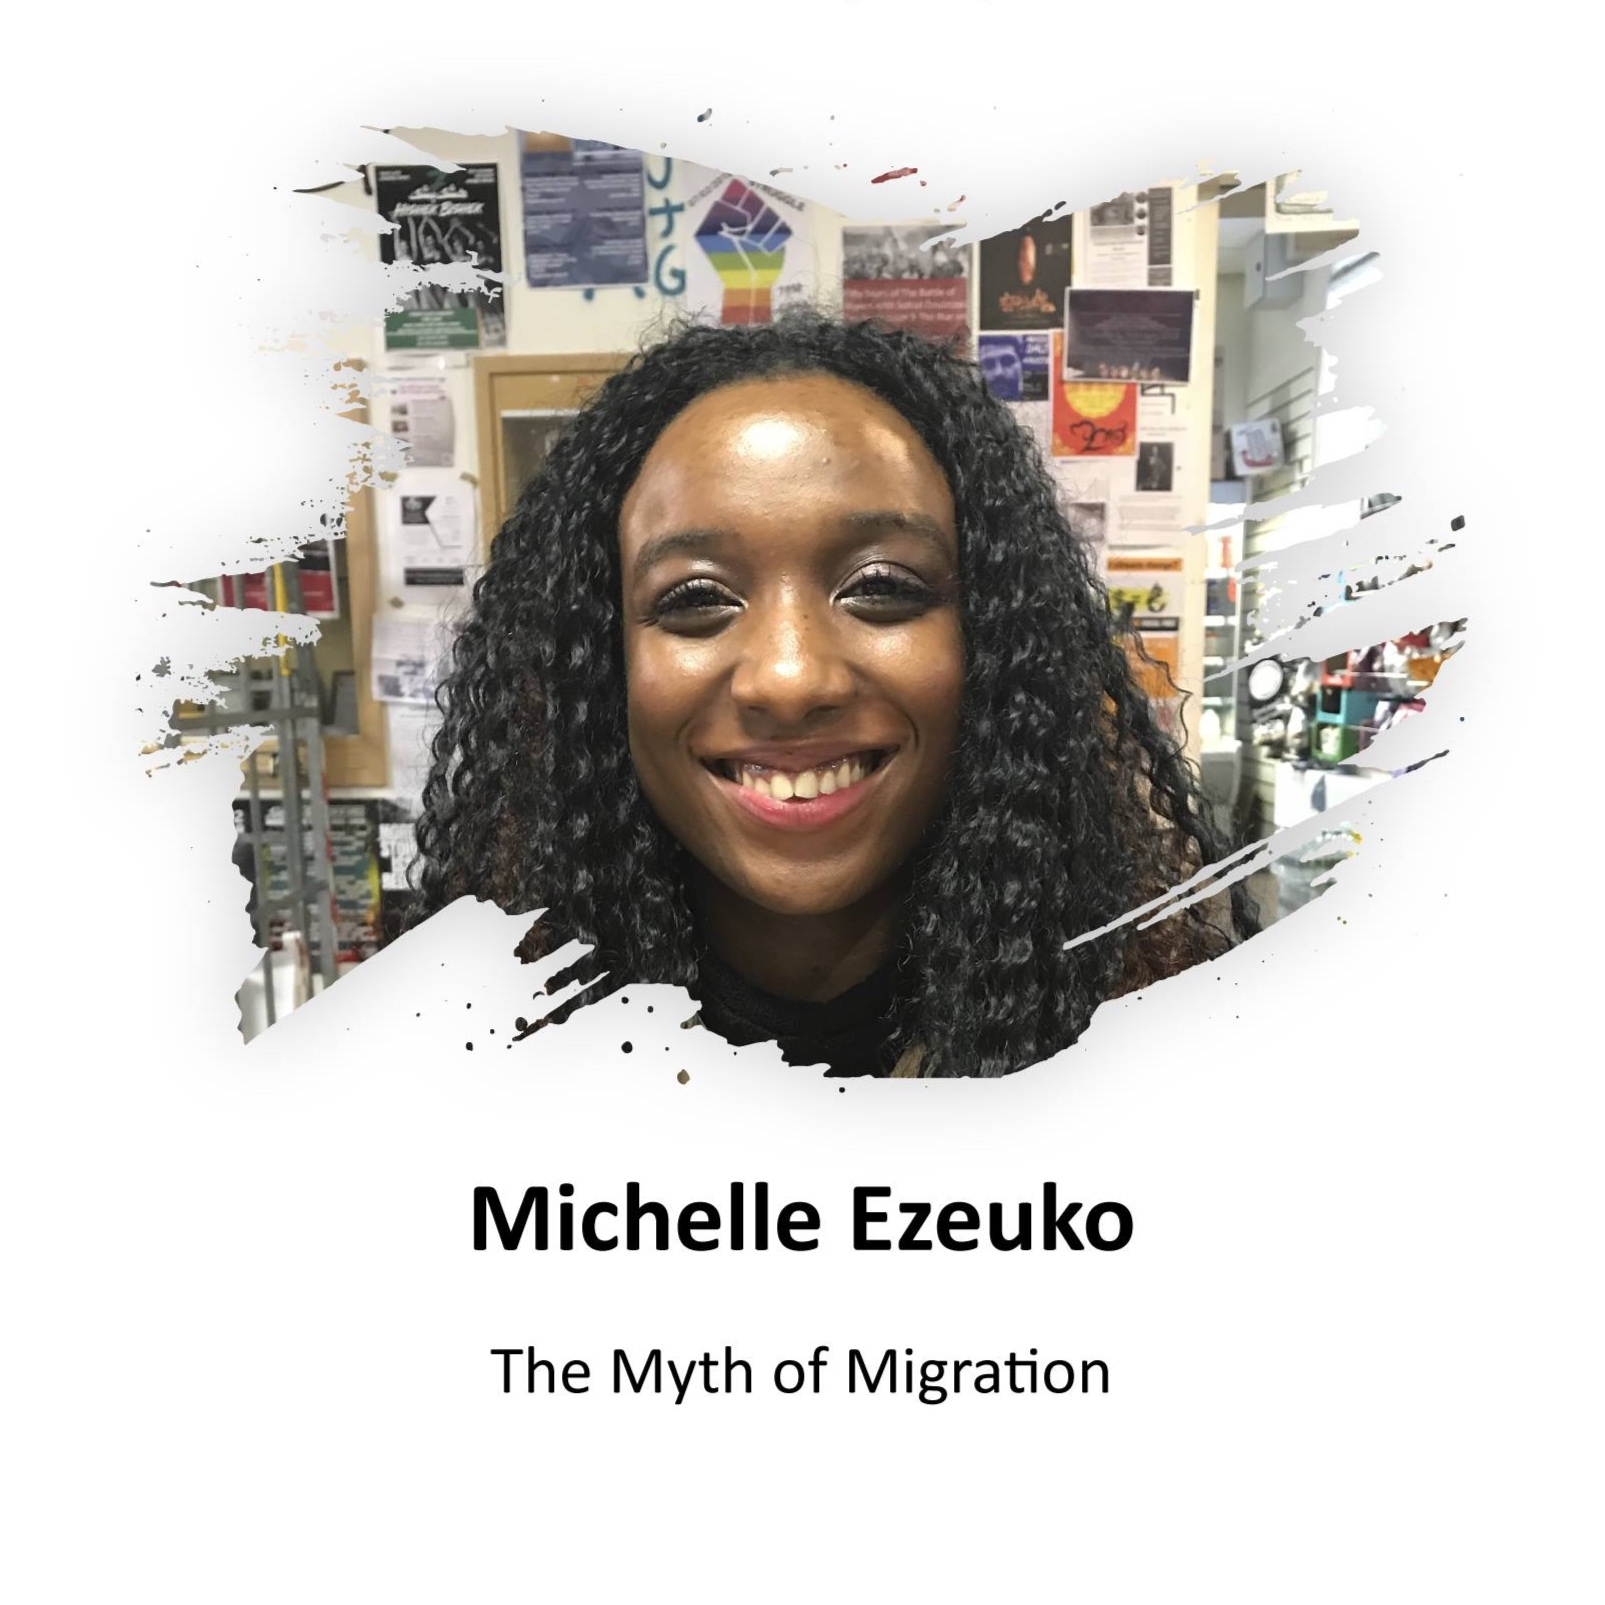 Michelle Ezeuko is a migrant, campaigner, facilitator, Law student and youth rights trainer. She started campaigning for migrant issues 5 years ago when she joined the campaign Let Us Learn. Michelle is also a youth rights trainer, training professionals on the immigration system from a young migrants perspective and coordinated the 'youth rights training' programme for Coram's migrant children's project. Additionally she is part of on road media's, media movers which aims to change the way the media talks about young migrants. Through her work as a trainer and facilitator Michelle is also an educational reformer and campaigns for Memorial 2007, an educational charity dedicated to erecting the first UK memorial dedicated to enslaved Africans.She is in her second year of studying law and wants to become a lawyer to utilise the courts as a site for justice.